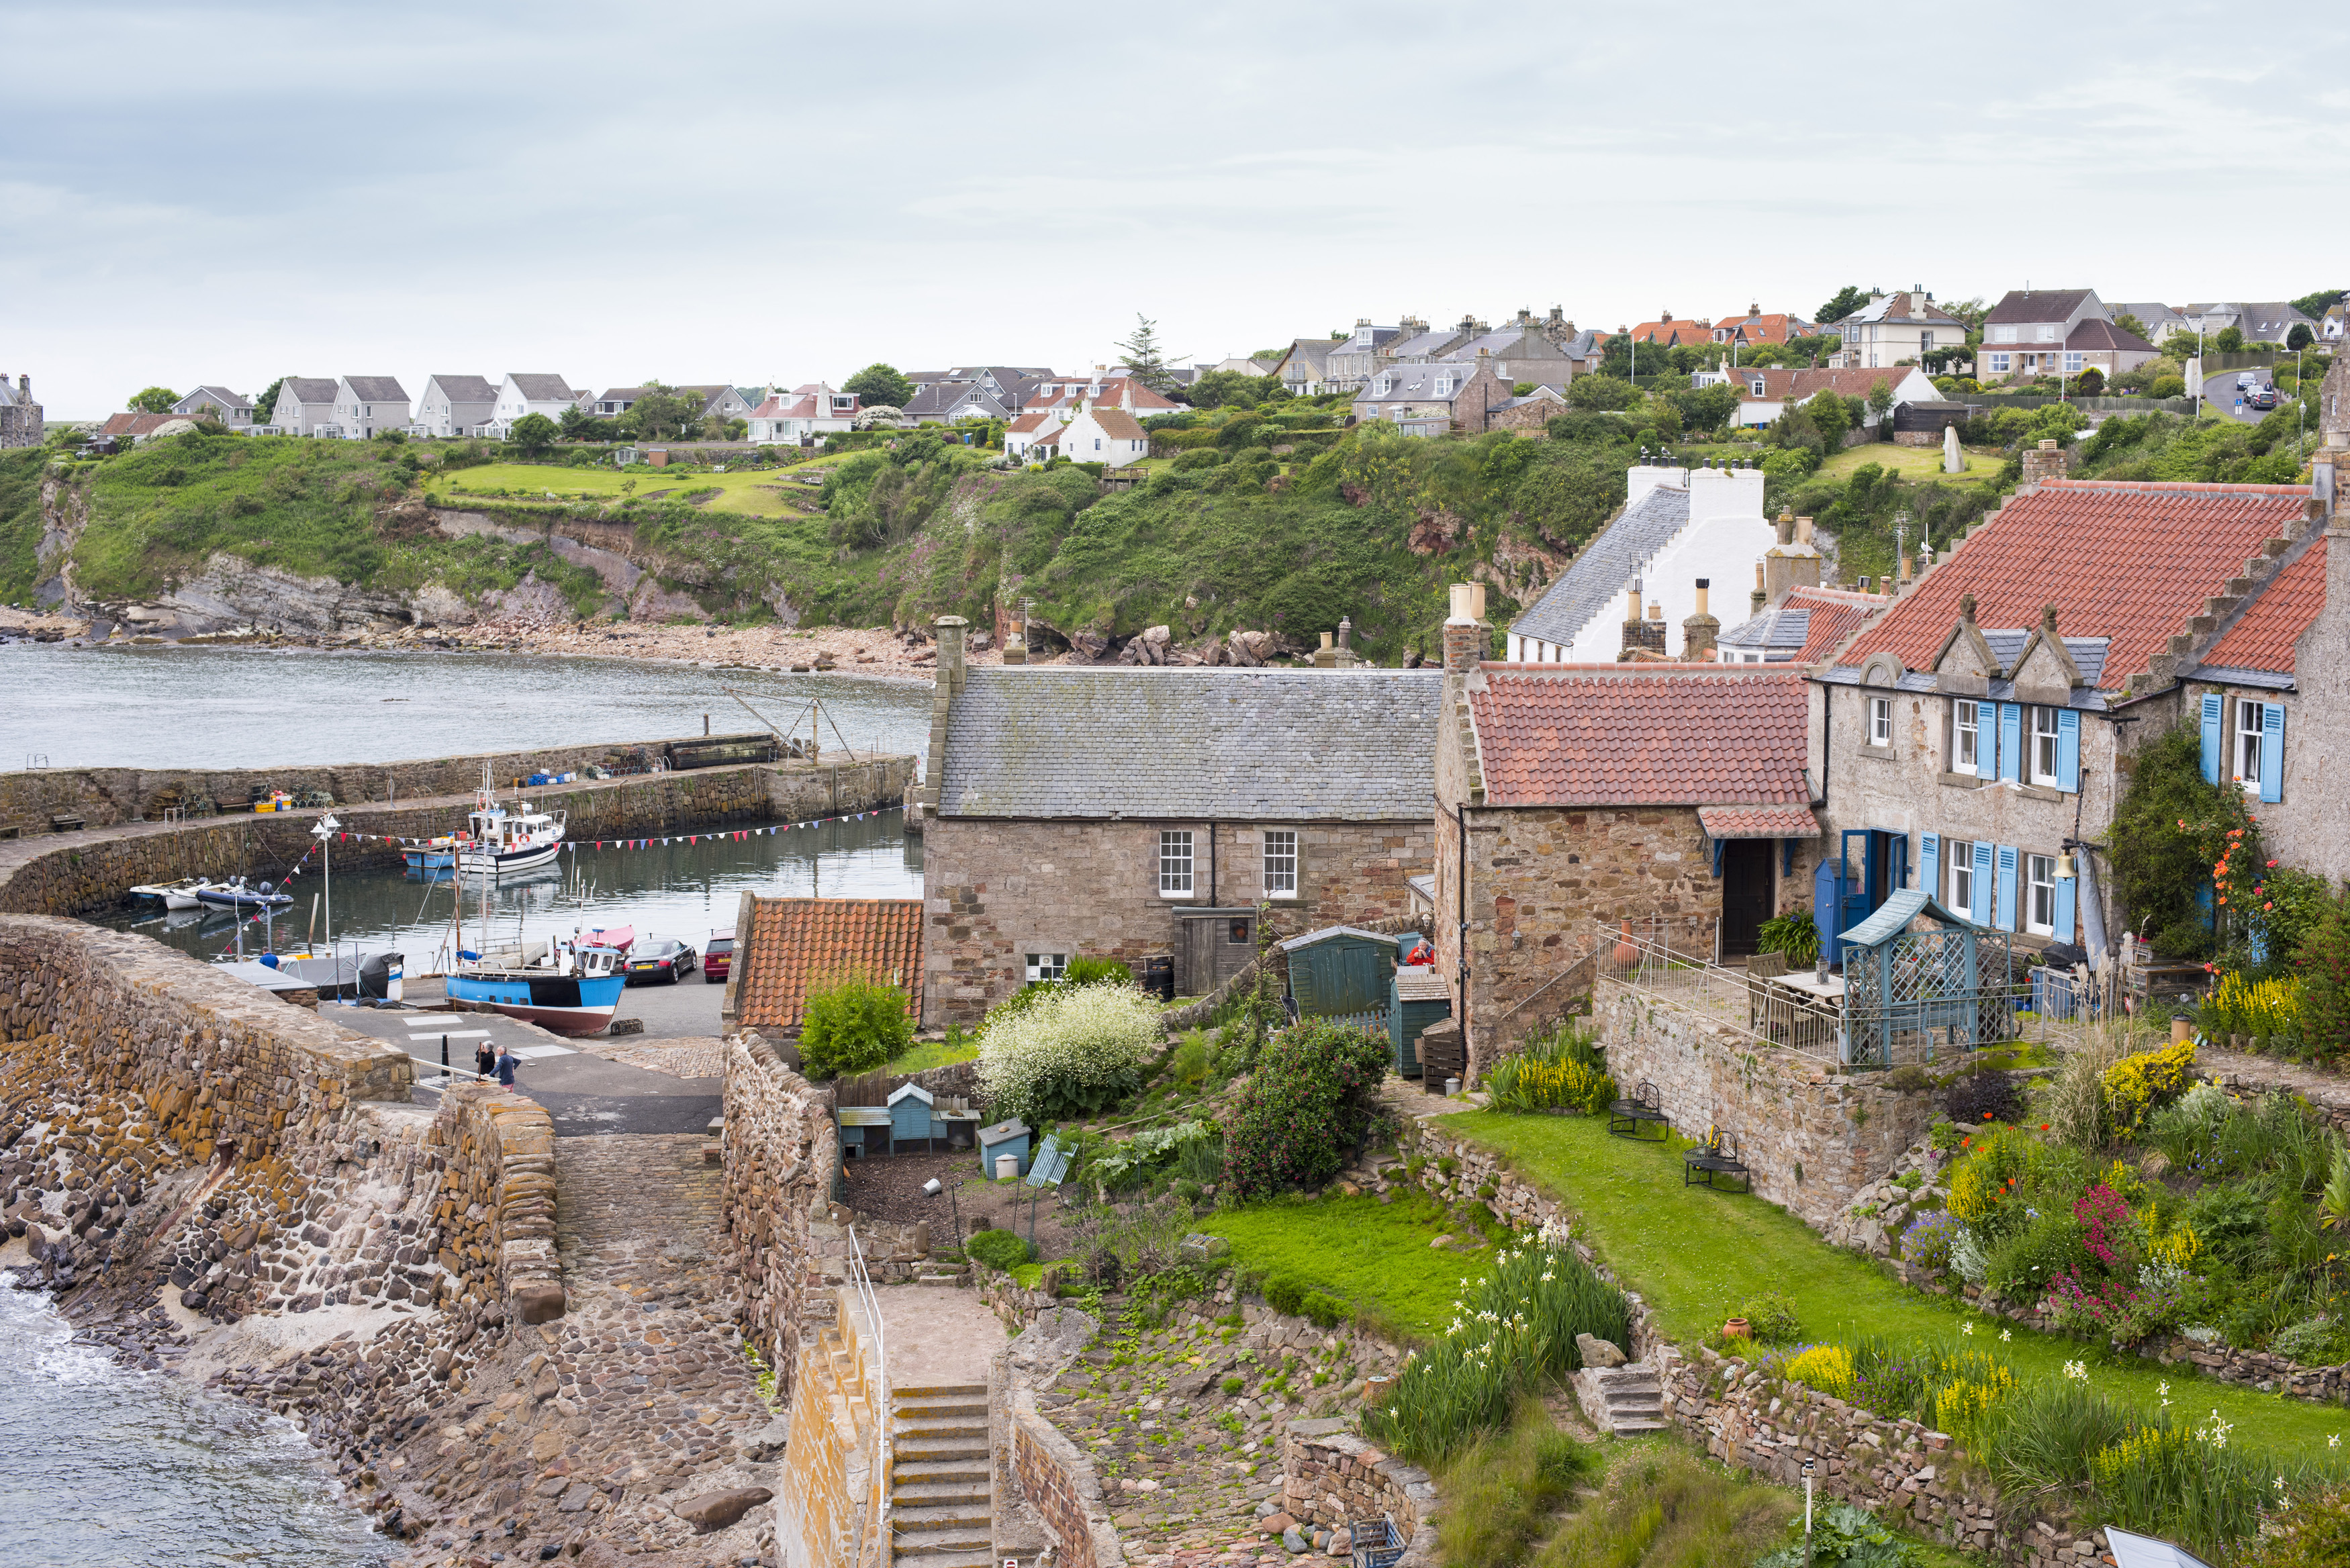 View of quaint houses, boats in bay and stairway down to water in Crail on the Fife Coast in Scotland